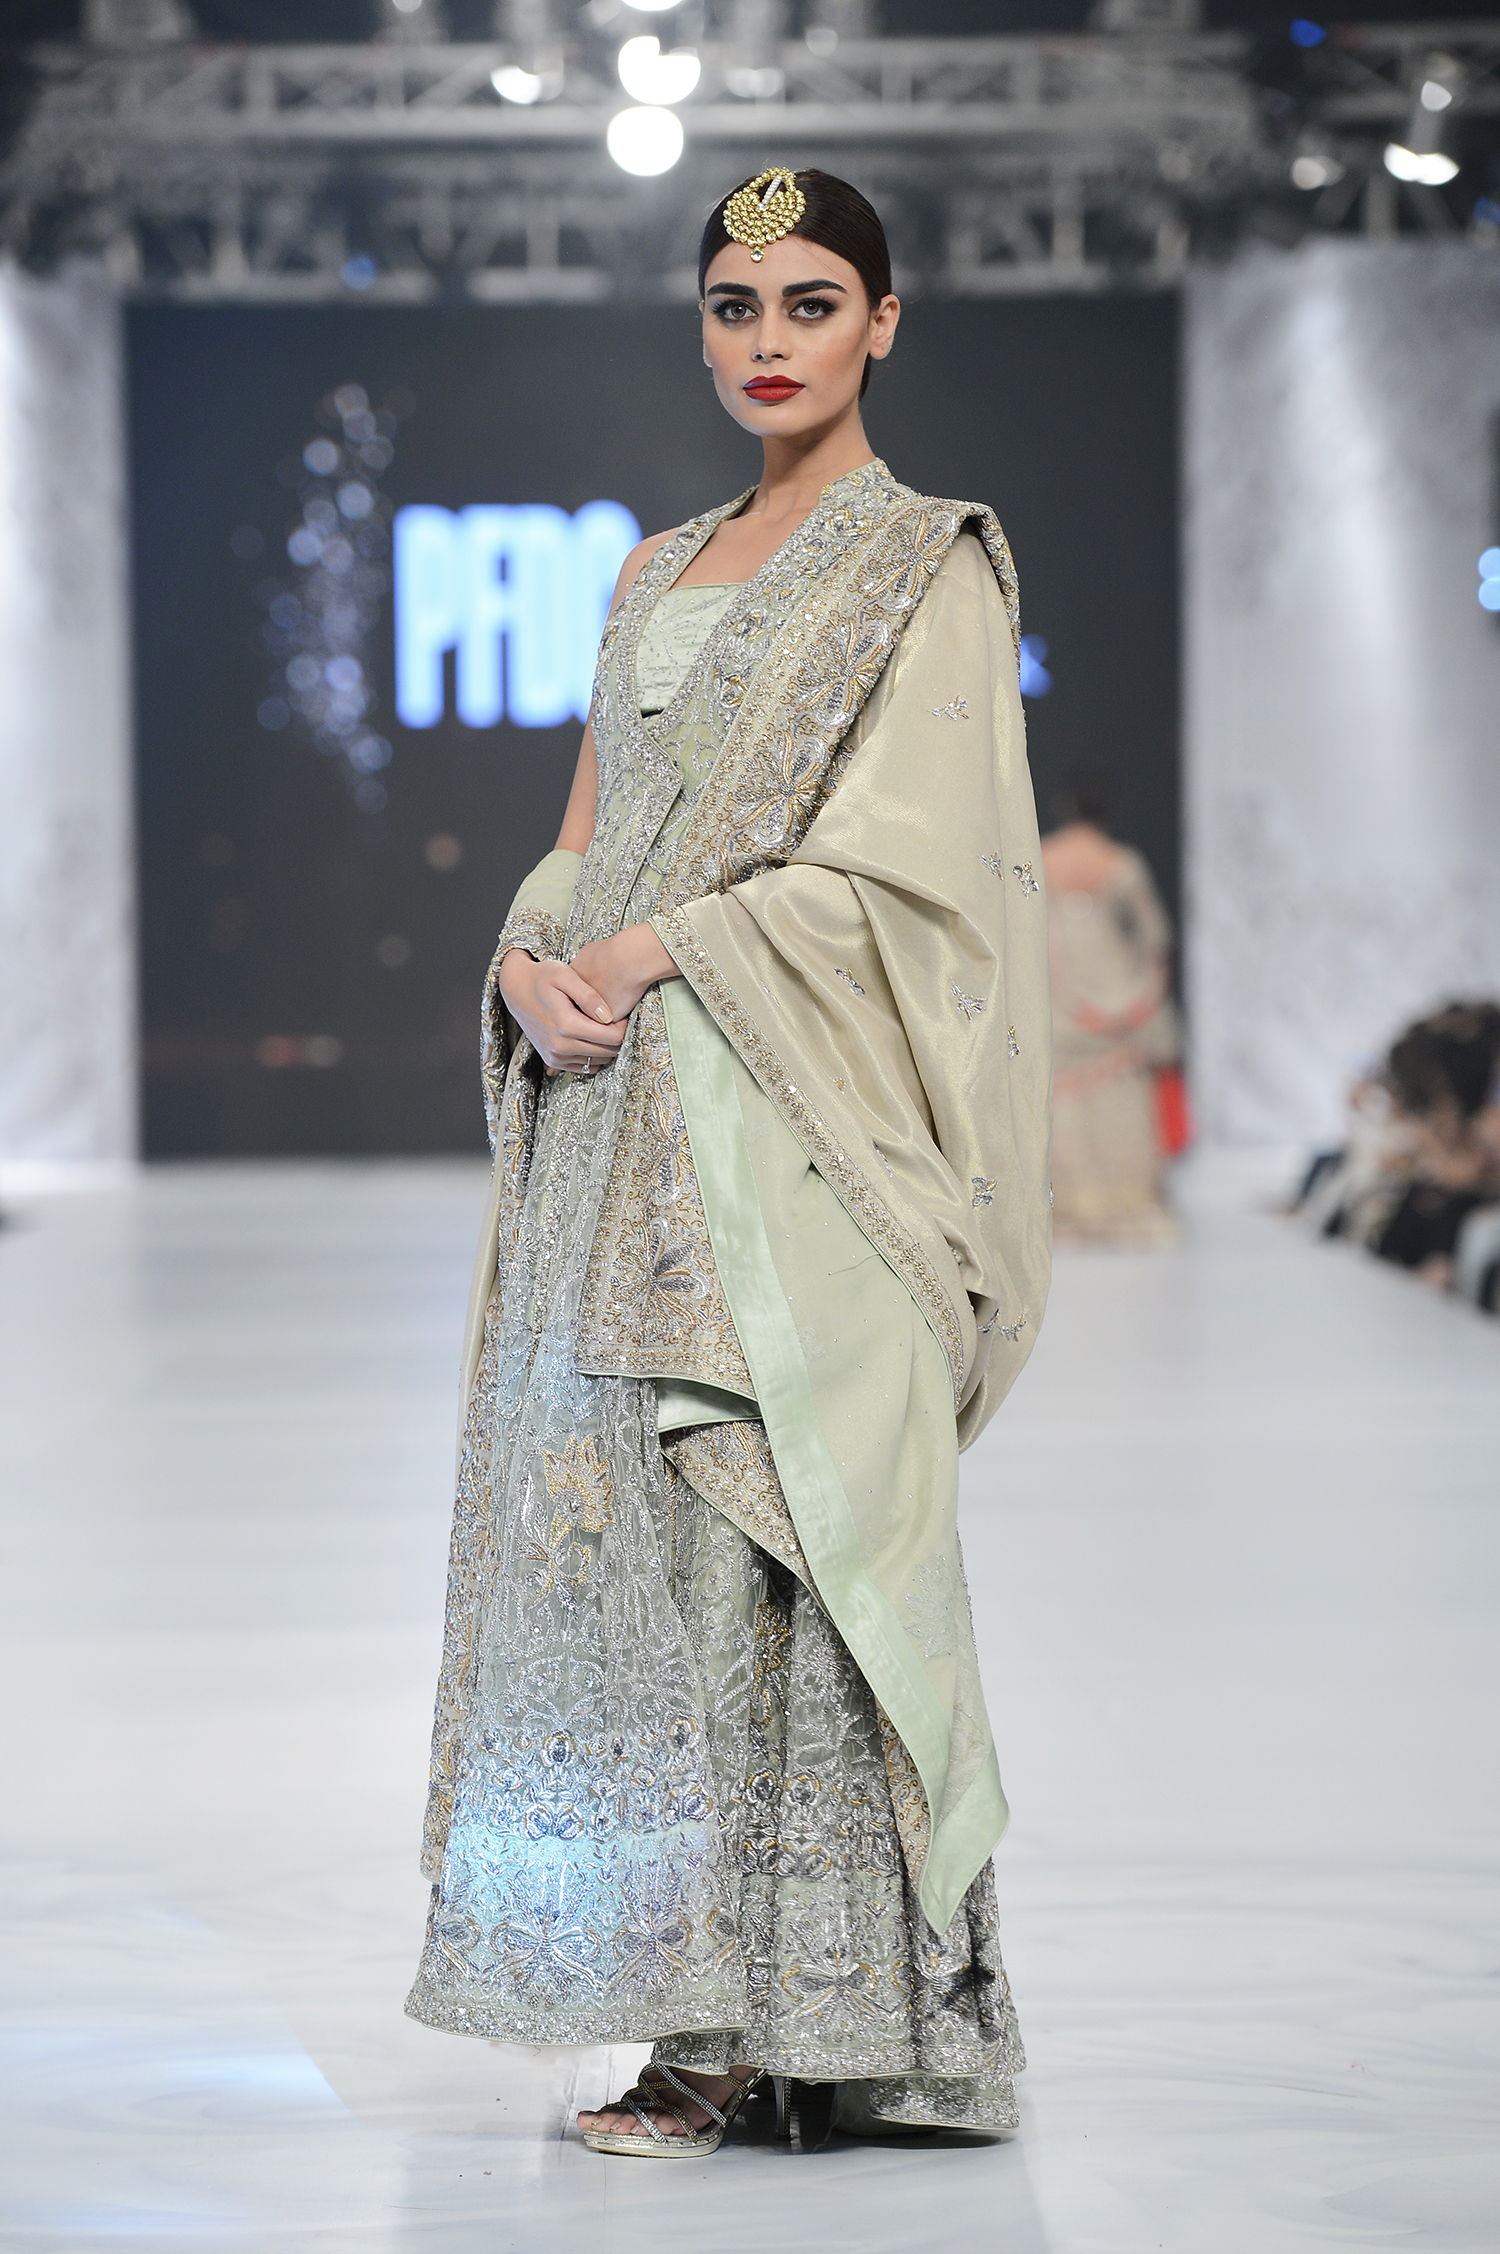 Shamsha Hashwani - PFDC L'Oréal Paris Bridal Week - Photography by Faisal Farooqui, Dragonfly